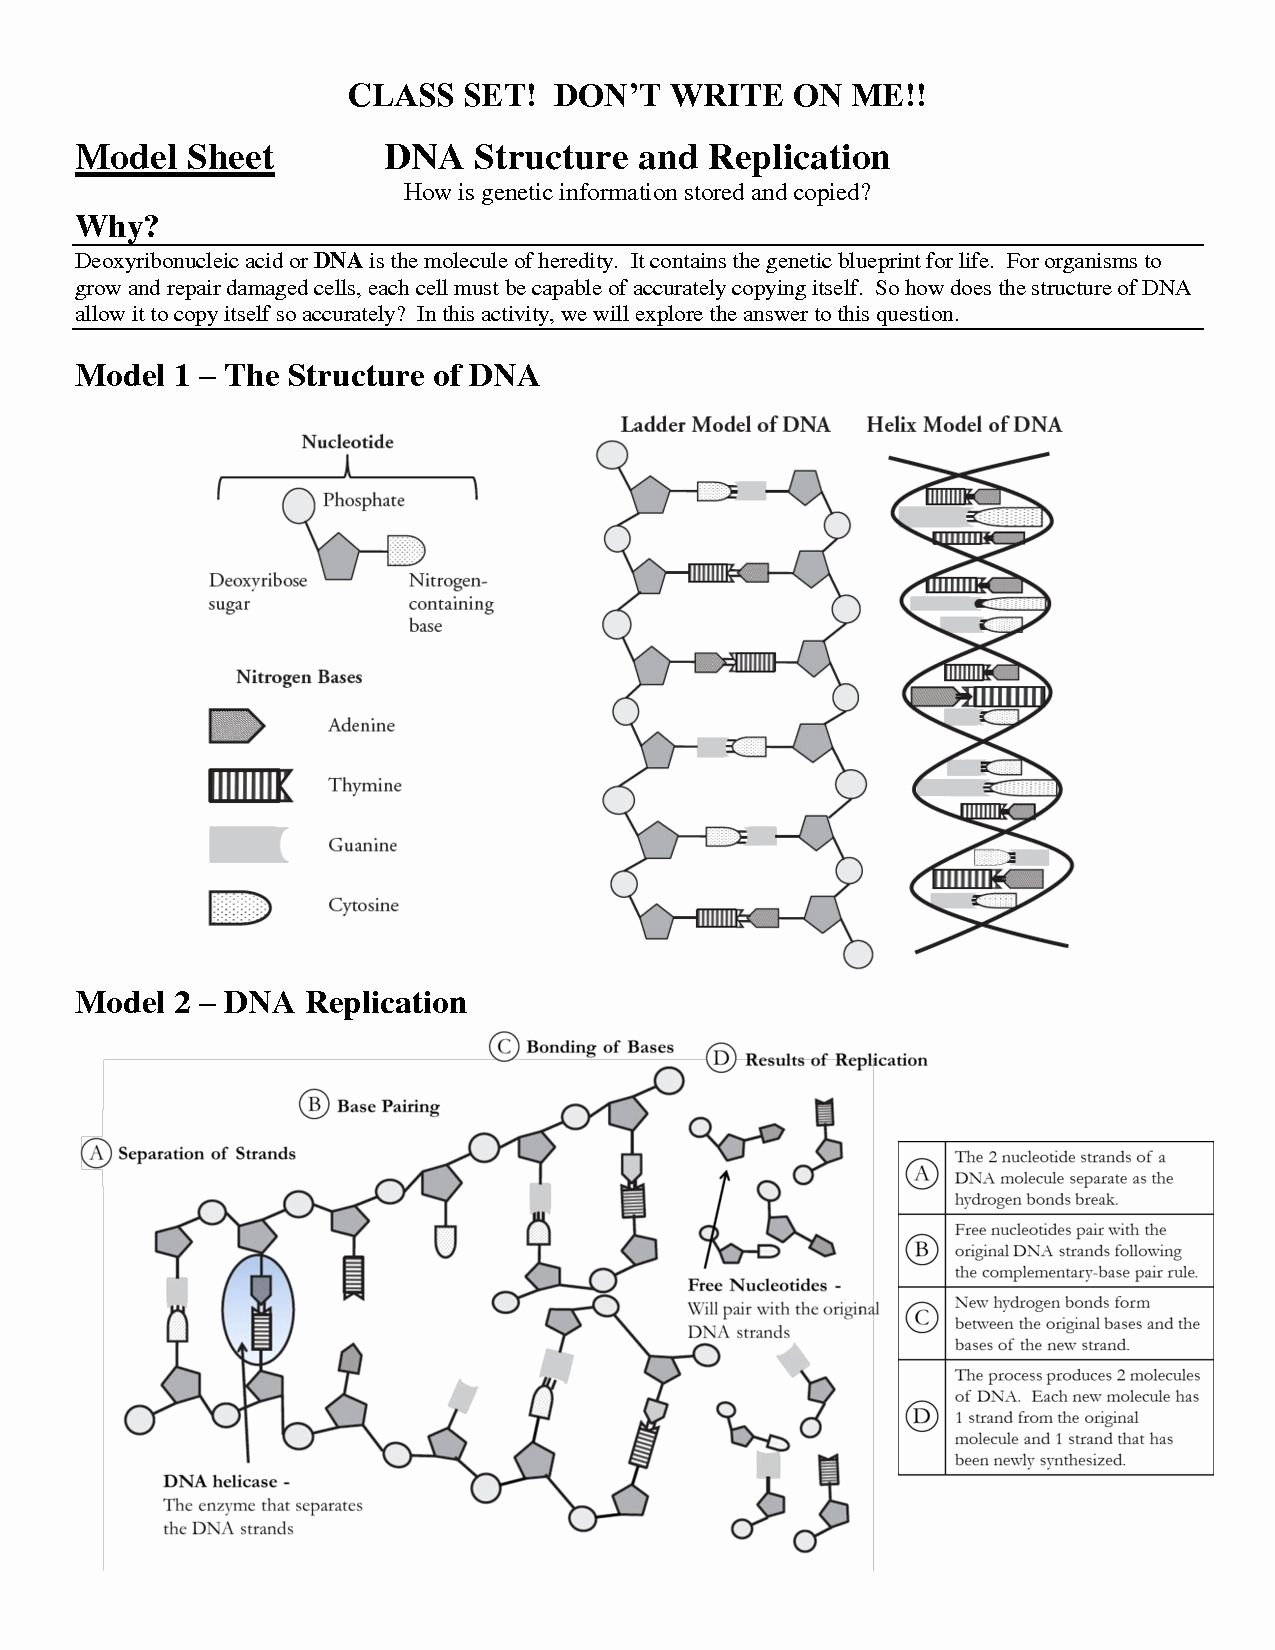 Dna Replication Worksheet Answer Key Awesome Structure Dna and Replication Worksheet Answers